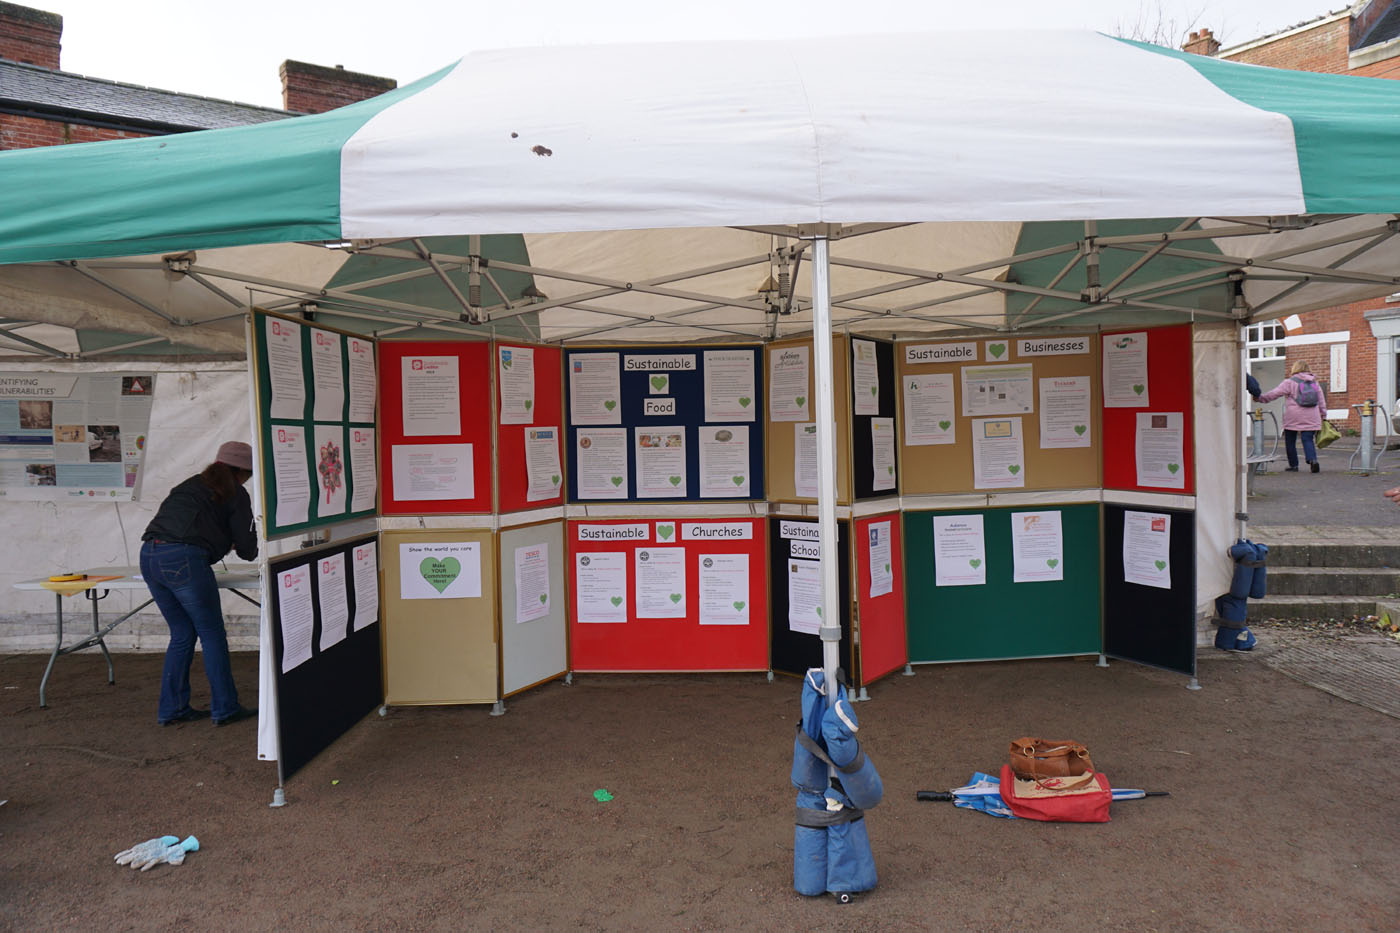 Photograph of display stands for local organisations